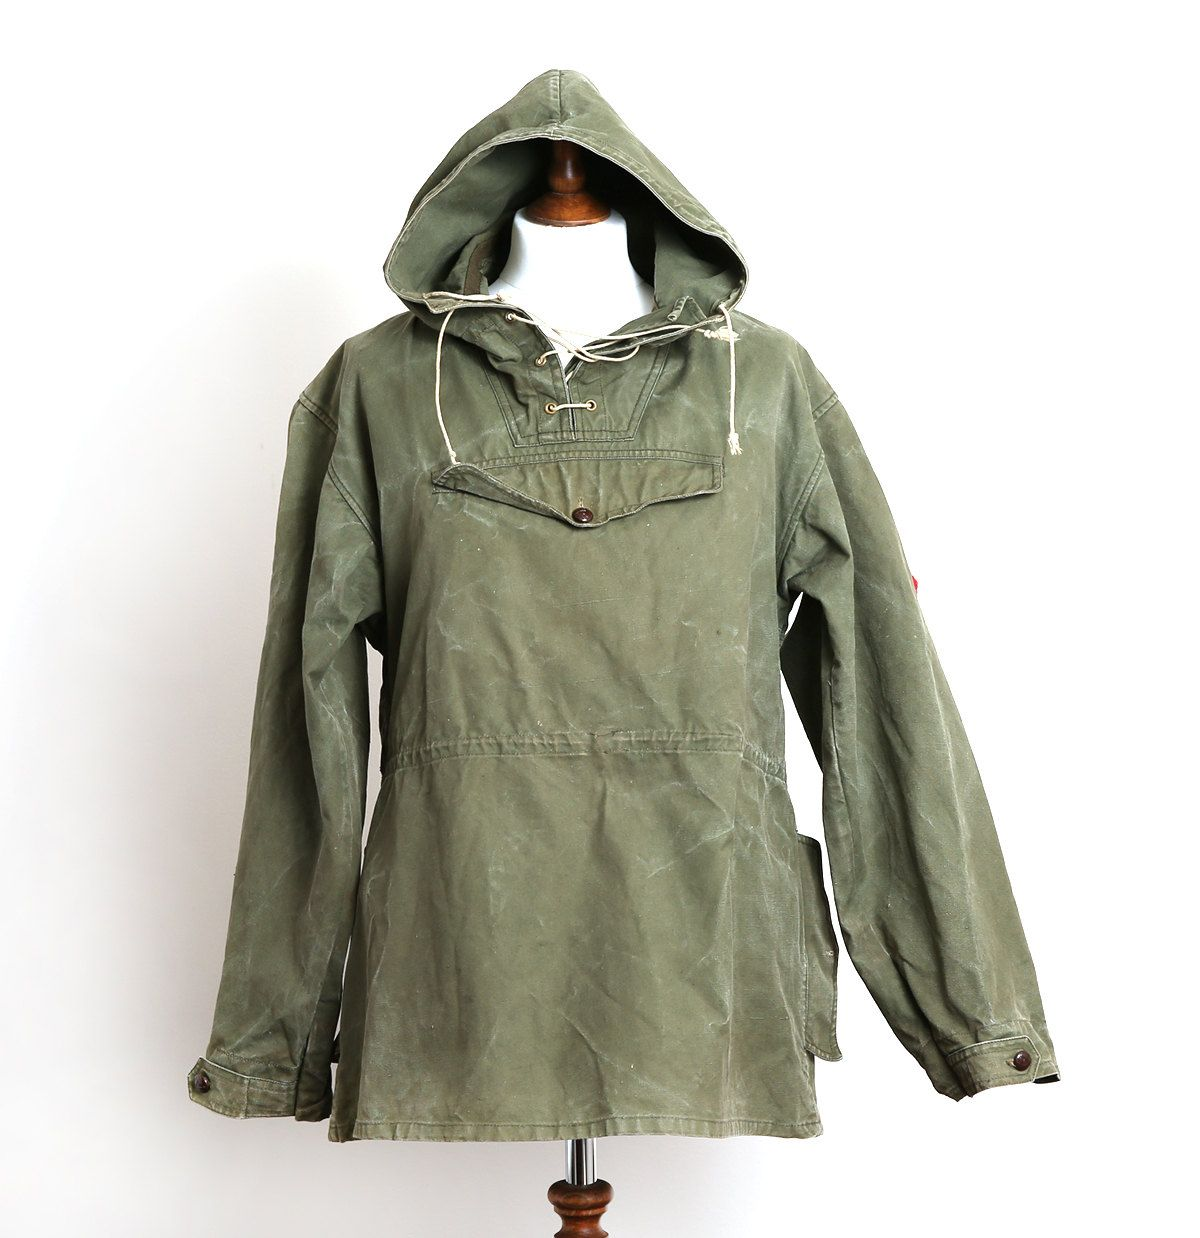 1867edca9b5 Vintage 1970 s Military Green Canvas Anorak vintage anorak military army  anorak canvas anorak vintage green anorak USSR army vintage gifts for him  USSR ...